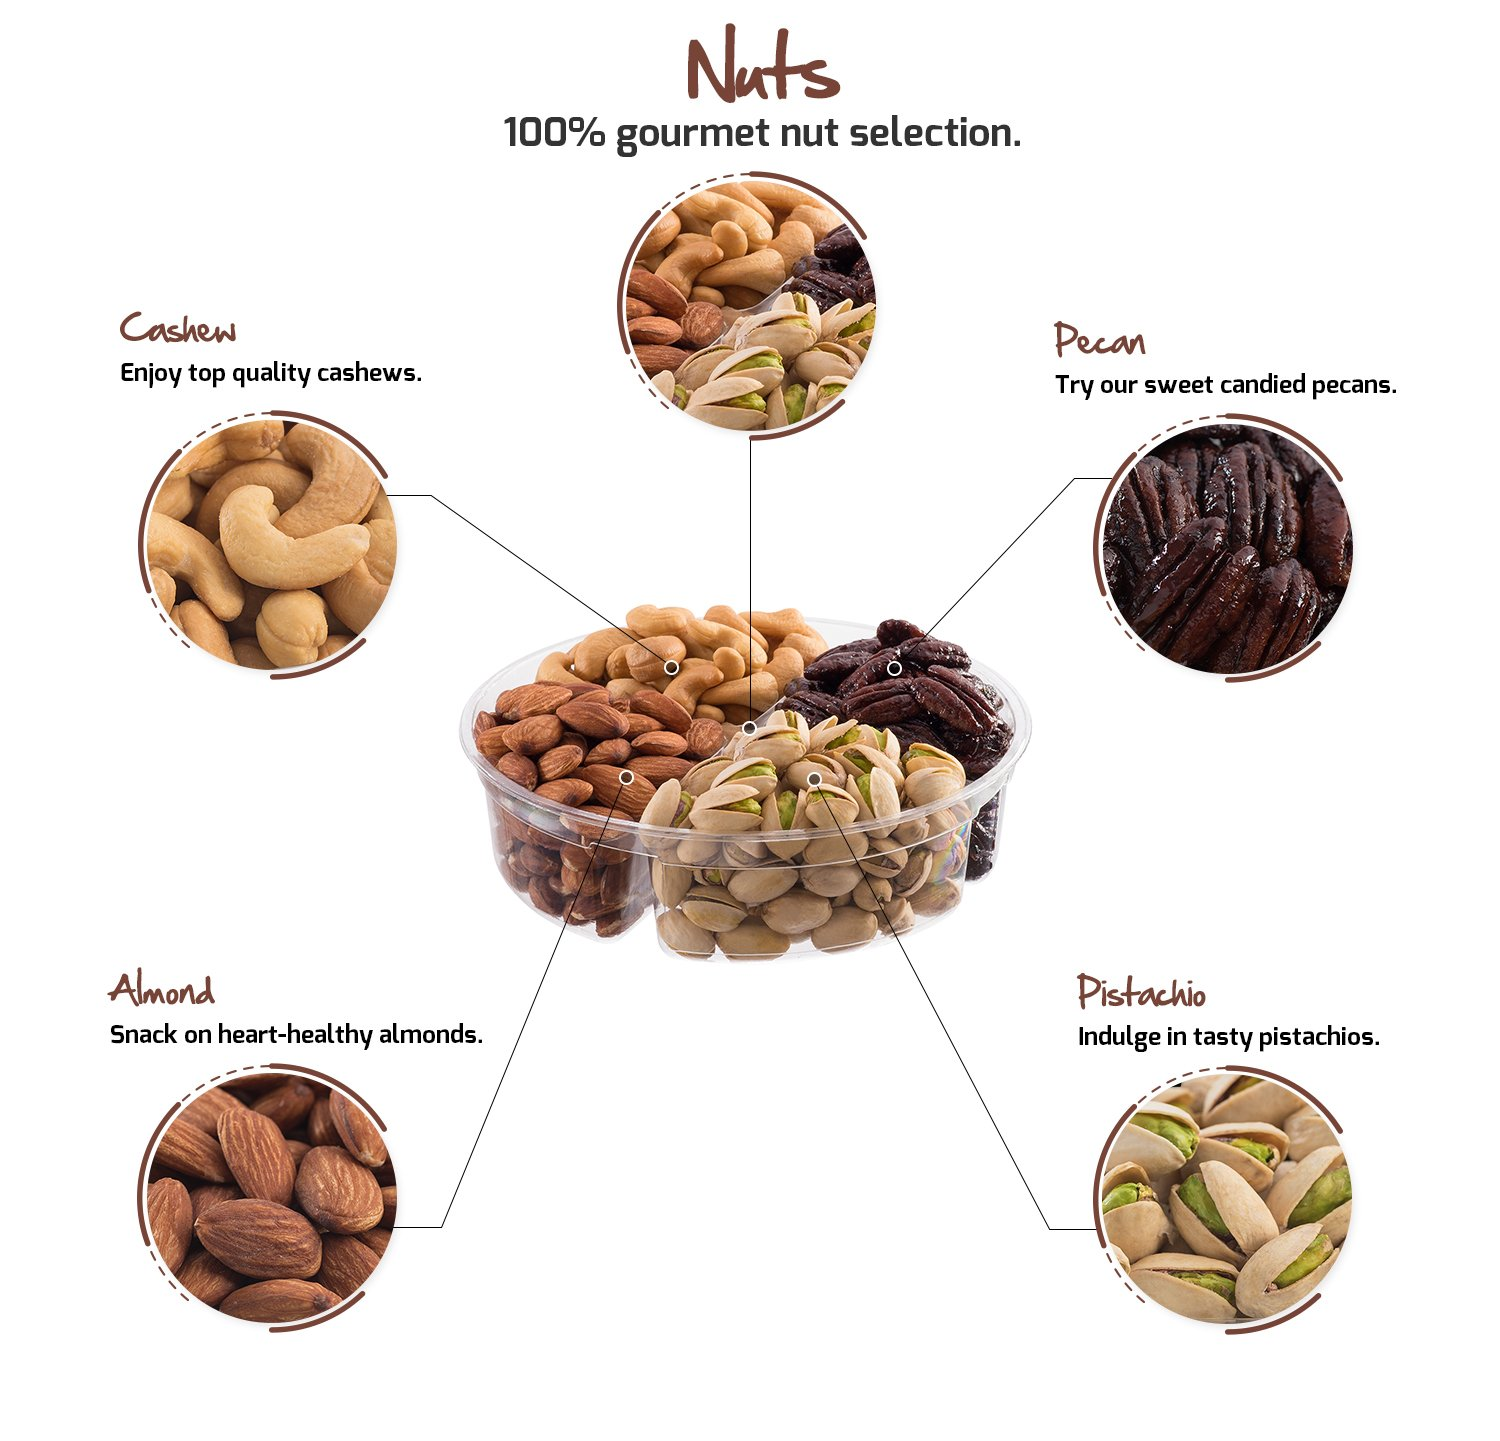 Nut Cravings Father's Day Gift Baskets - 4-Sectional Gourmet Mixed Nuts Prime Food Gift Tray - Healthy Holiday Gift Assortment For Birthday - Sympathy - Get Well - Corporate Gift Box - Or Any Occasion by Nut Cravings (Image #2)